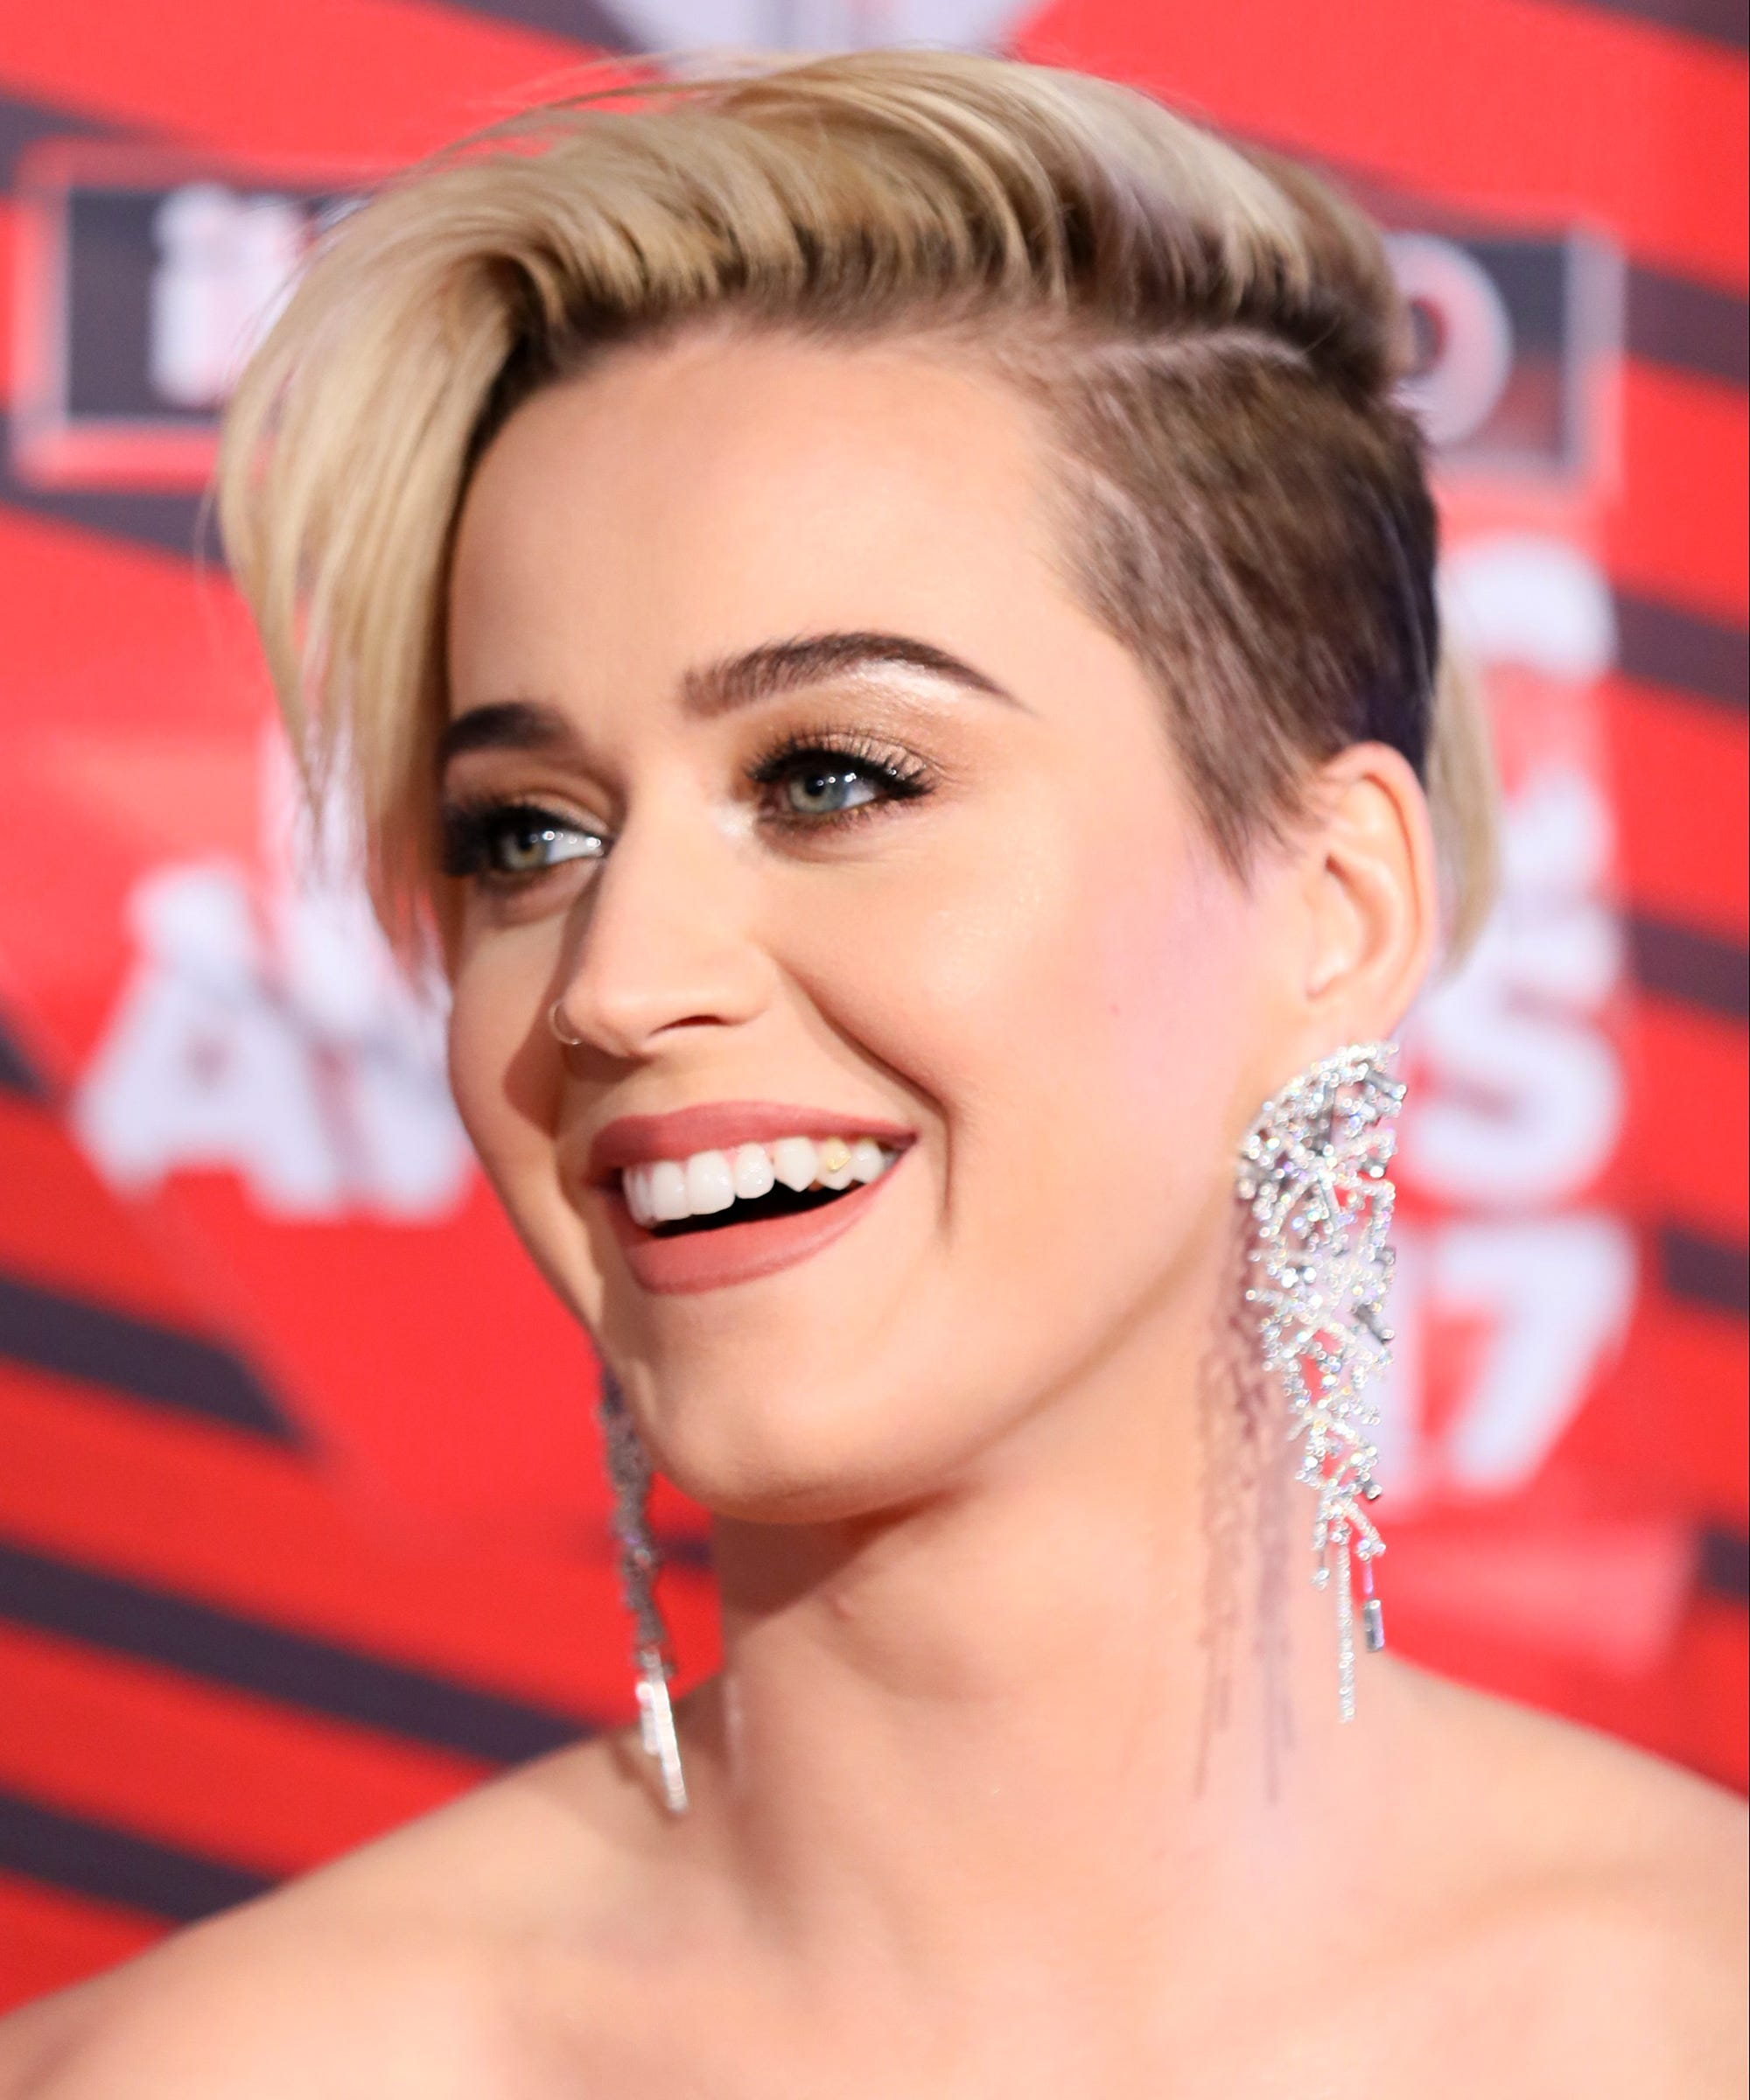 Remarkable Katy Perry Pixie Haircut Inspiration Reveal Iheart 2017 Short Hairstyles For Black Women Fulllsitofus